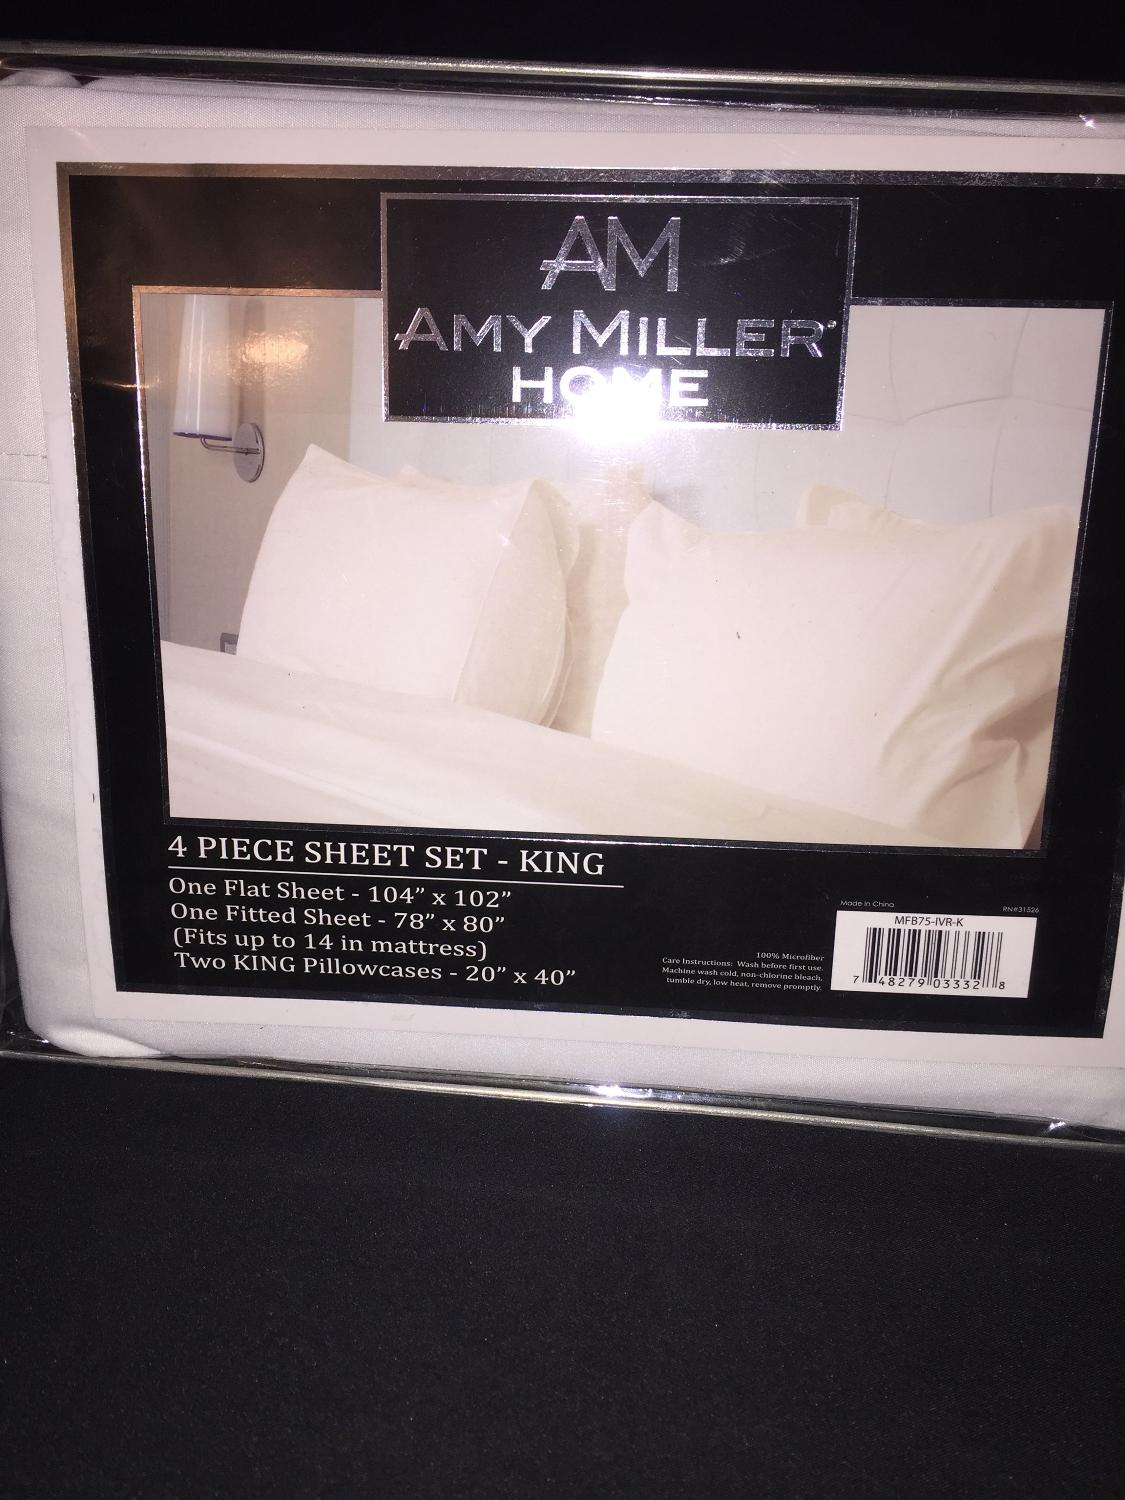 Amy Miller Photography amy miller home 4 piece king set